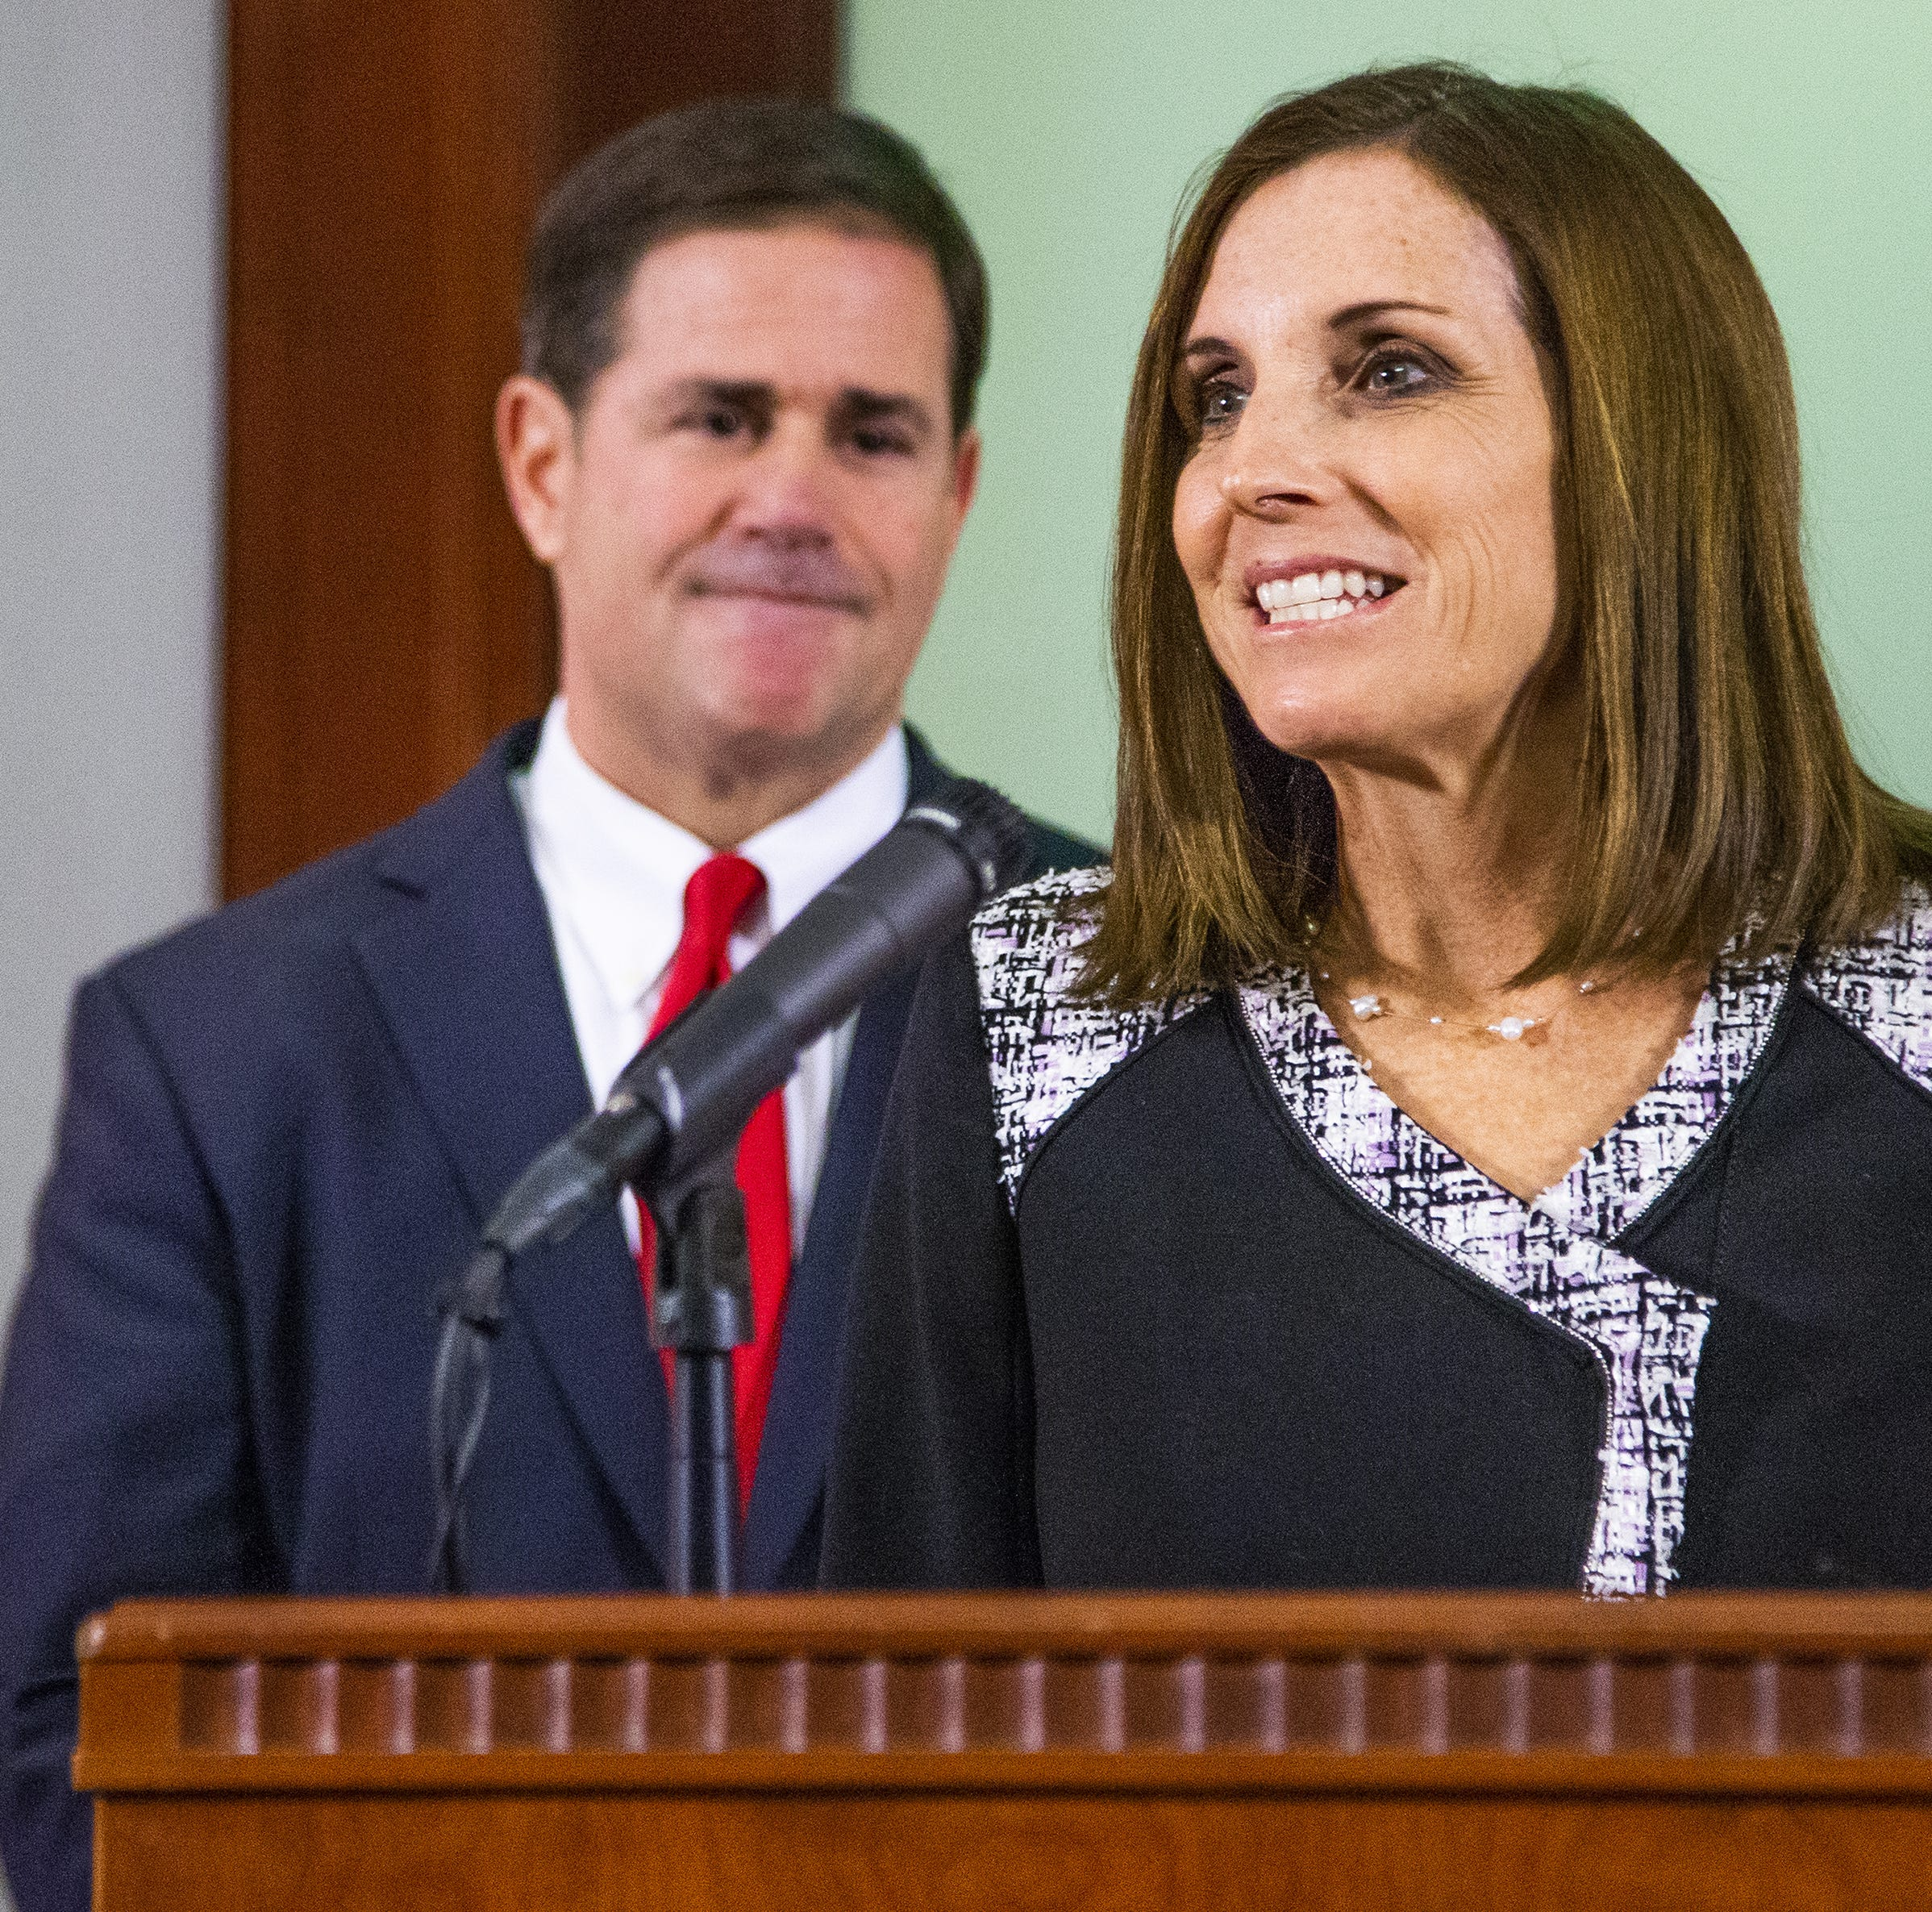 A new McSally? Ahead of Senate job, she honors McCain, seeks common ground with Sinema